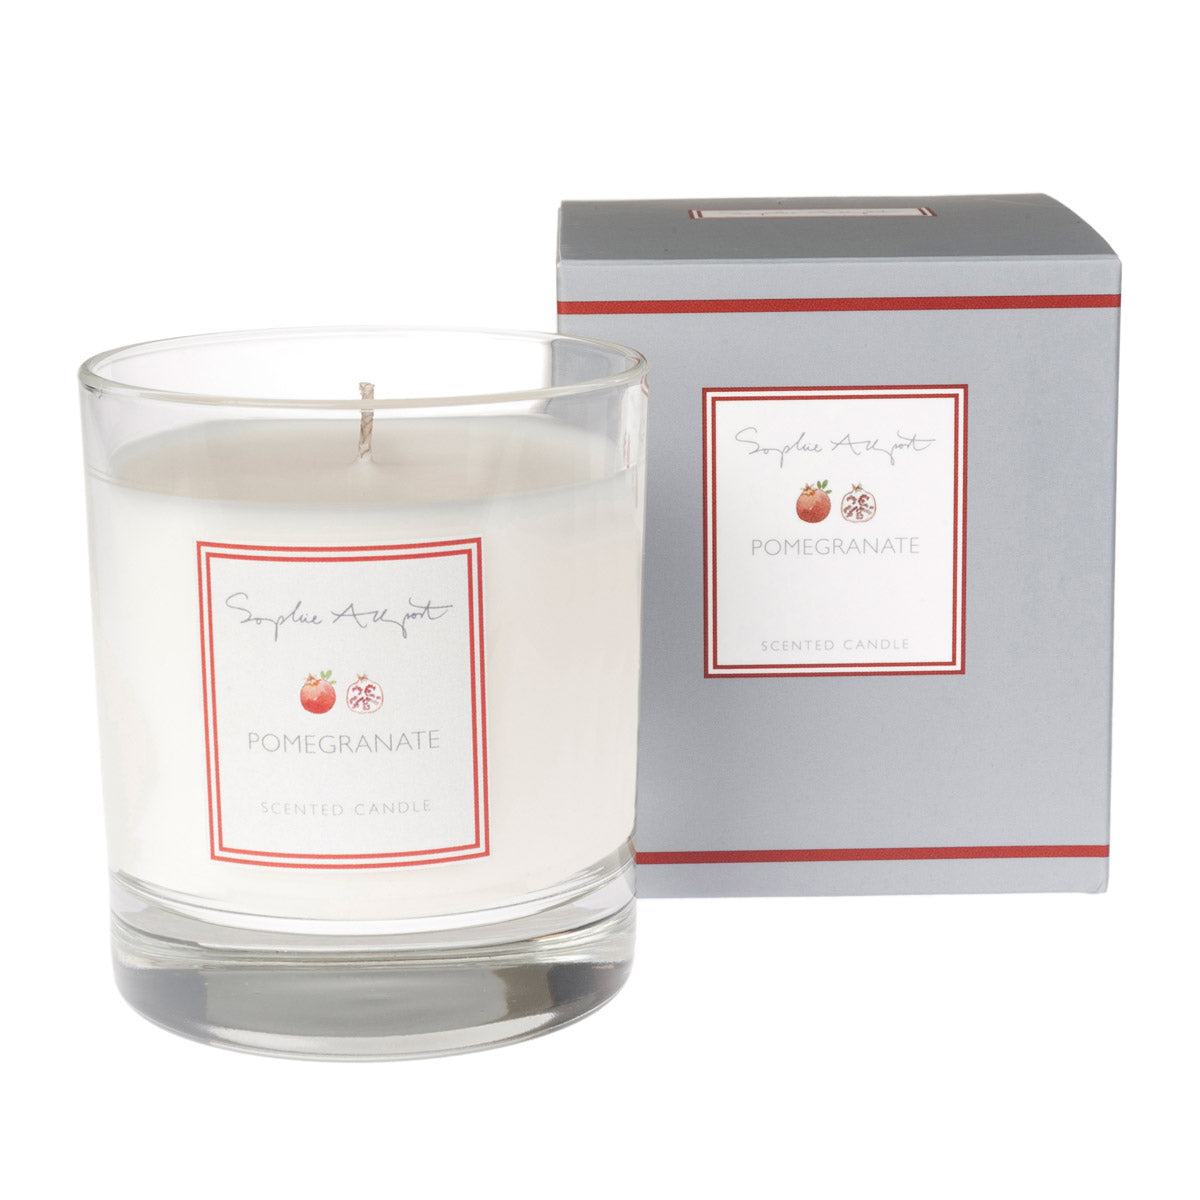 Pomegranate Scented Candle -220g